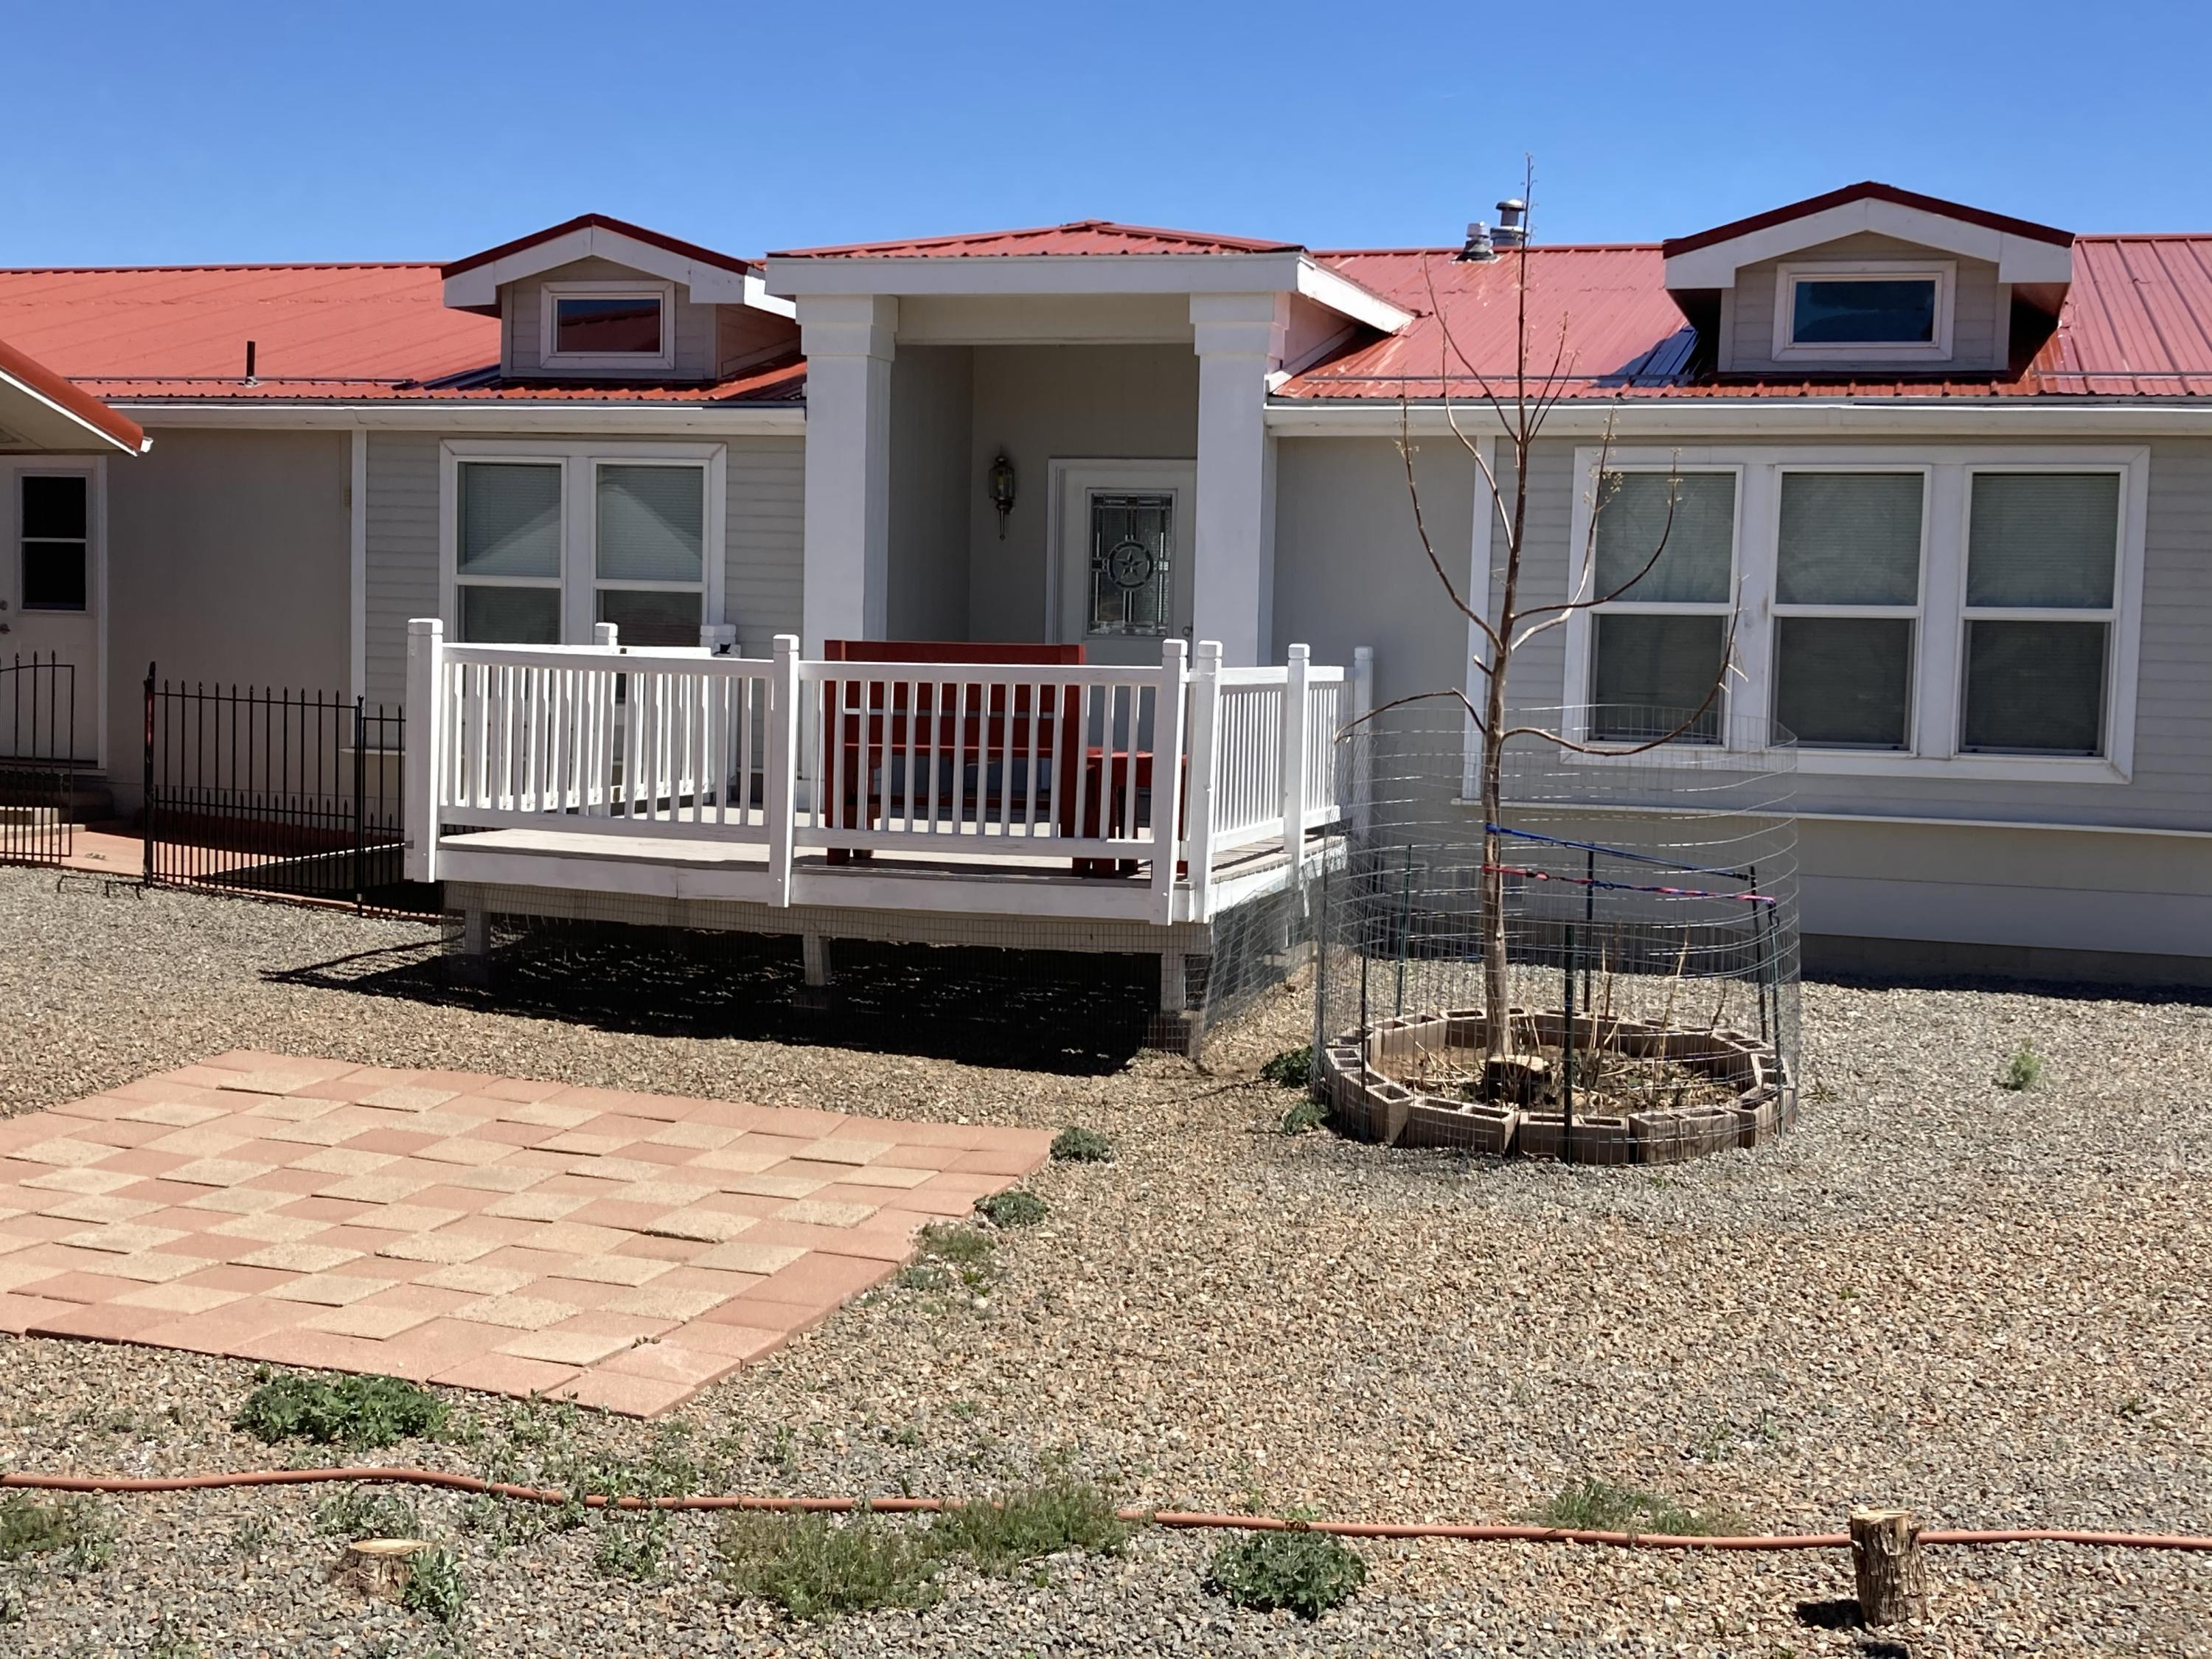 Welcome to the East Mountains! This home has so much to offer. The sale will include to seperate 10 acre lots. The home is a Karsten triple wide with 2x6 walls and is 2720 sq ft which includes a living area and family room, four bedrooms a huge kitchen with lots of cabinets with tile and  a kitchen island and breakfast nook. All the appliances stay.  You'll enjoy the views from the living area or the master bedroom. The deck is perfect to enjoy being outdoors. There is a 2 car garage and a 20x30 workshop, a two car carport. There are also two separate out buildings for crafts or other products. Theres a nice rainwater system with 13000 gallons of tanks. Make this home yours before its too late!